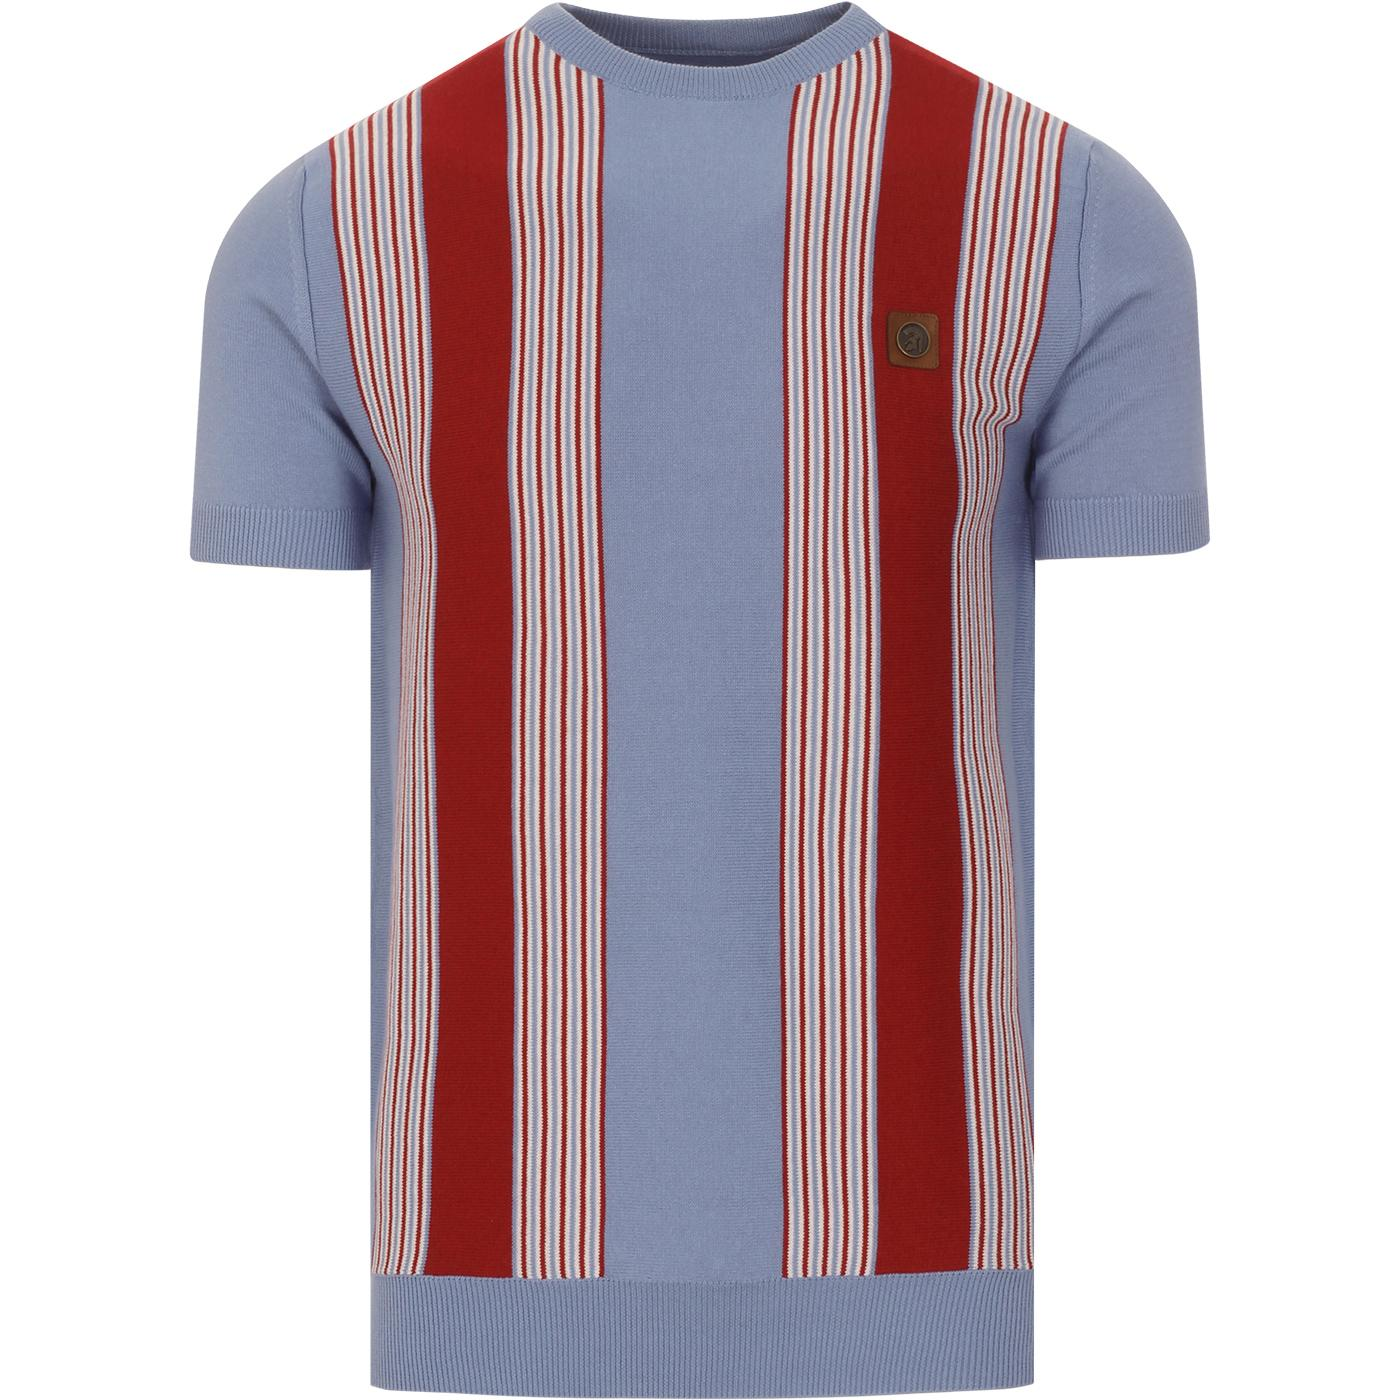 TROJAN RECORDS Retro Mod Stripe Knit Tee (Sky)